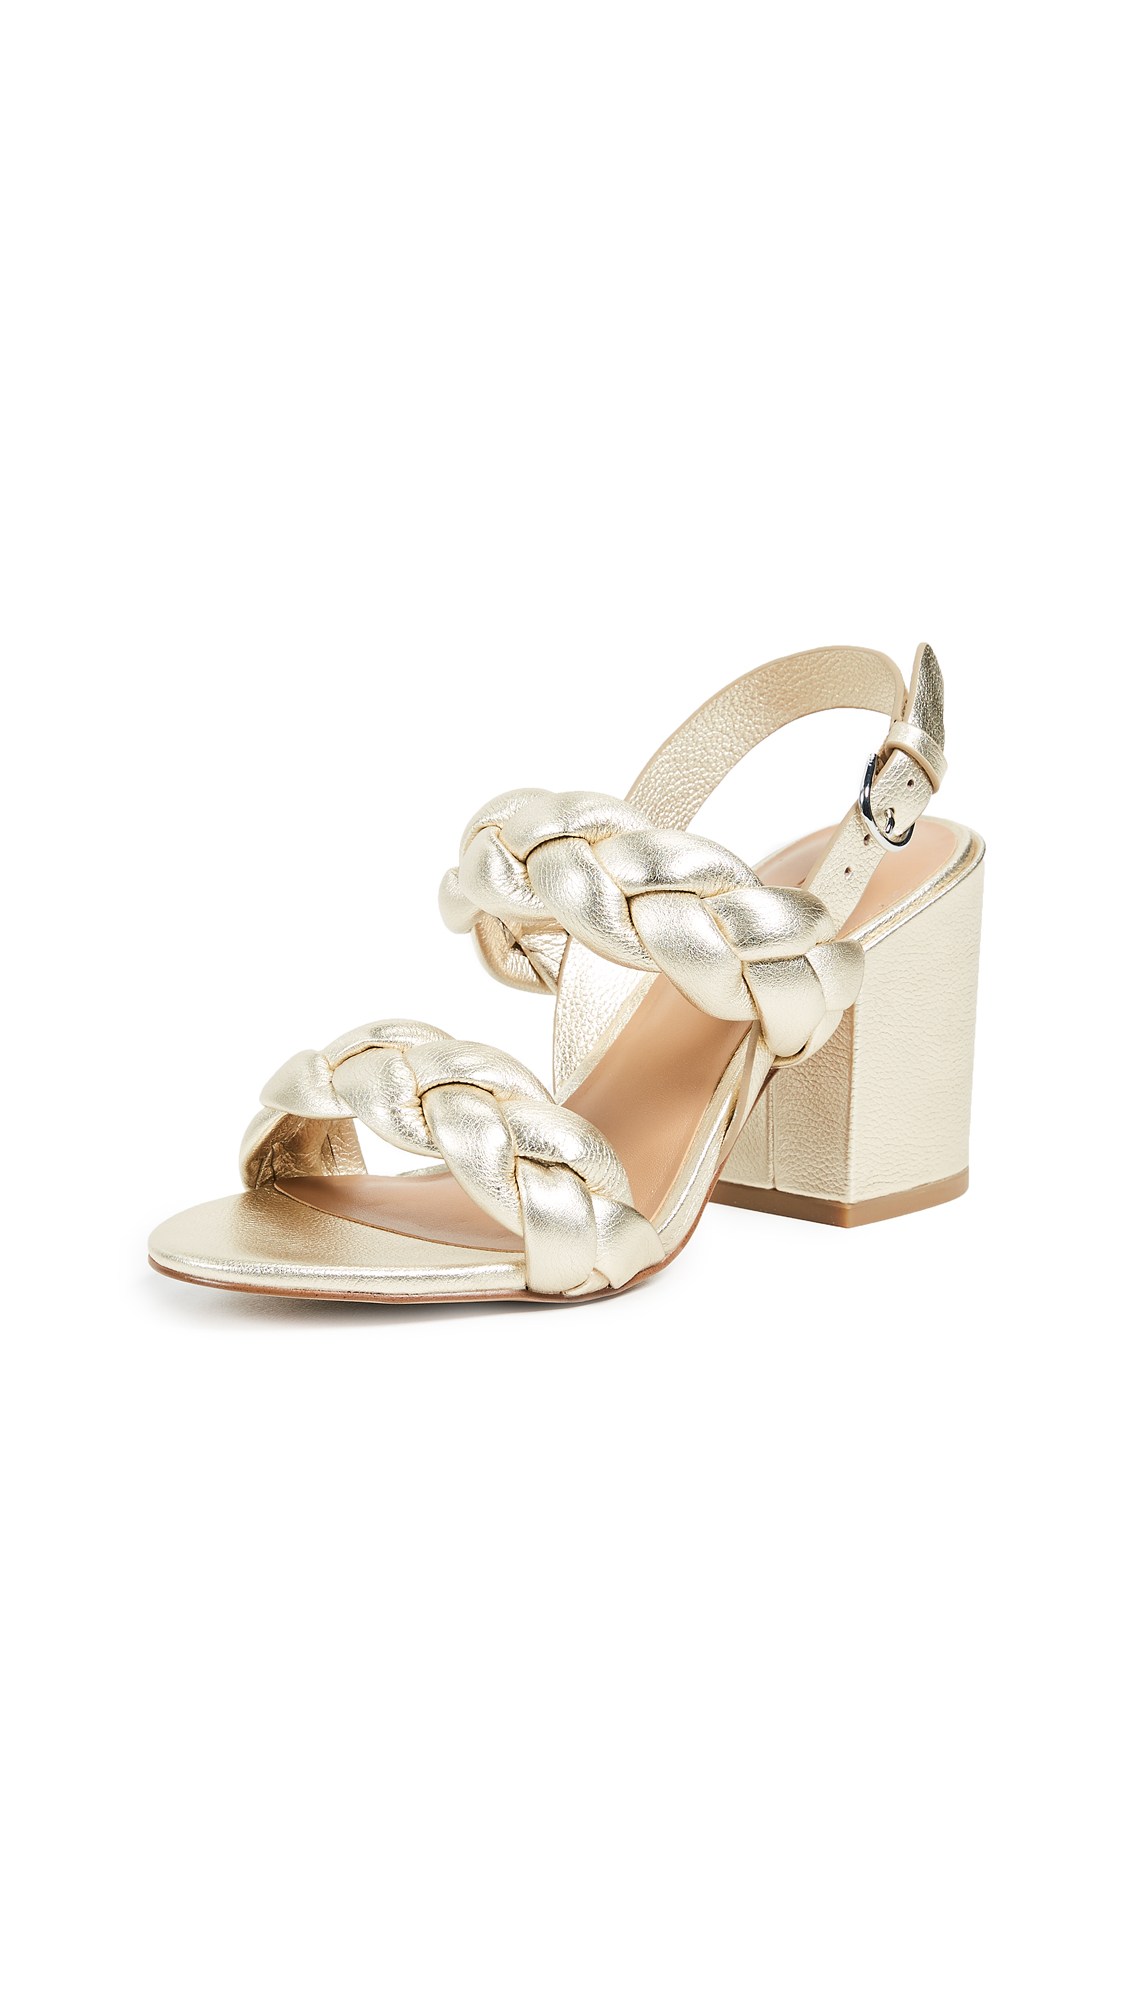 Rebecca Minkoff Candace Braided Sandals - Champagne